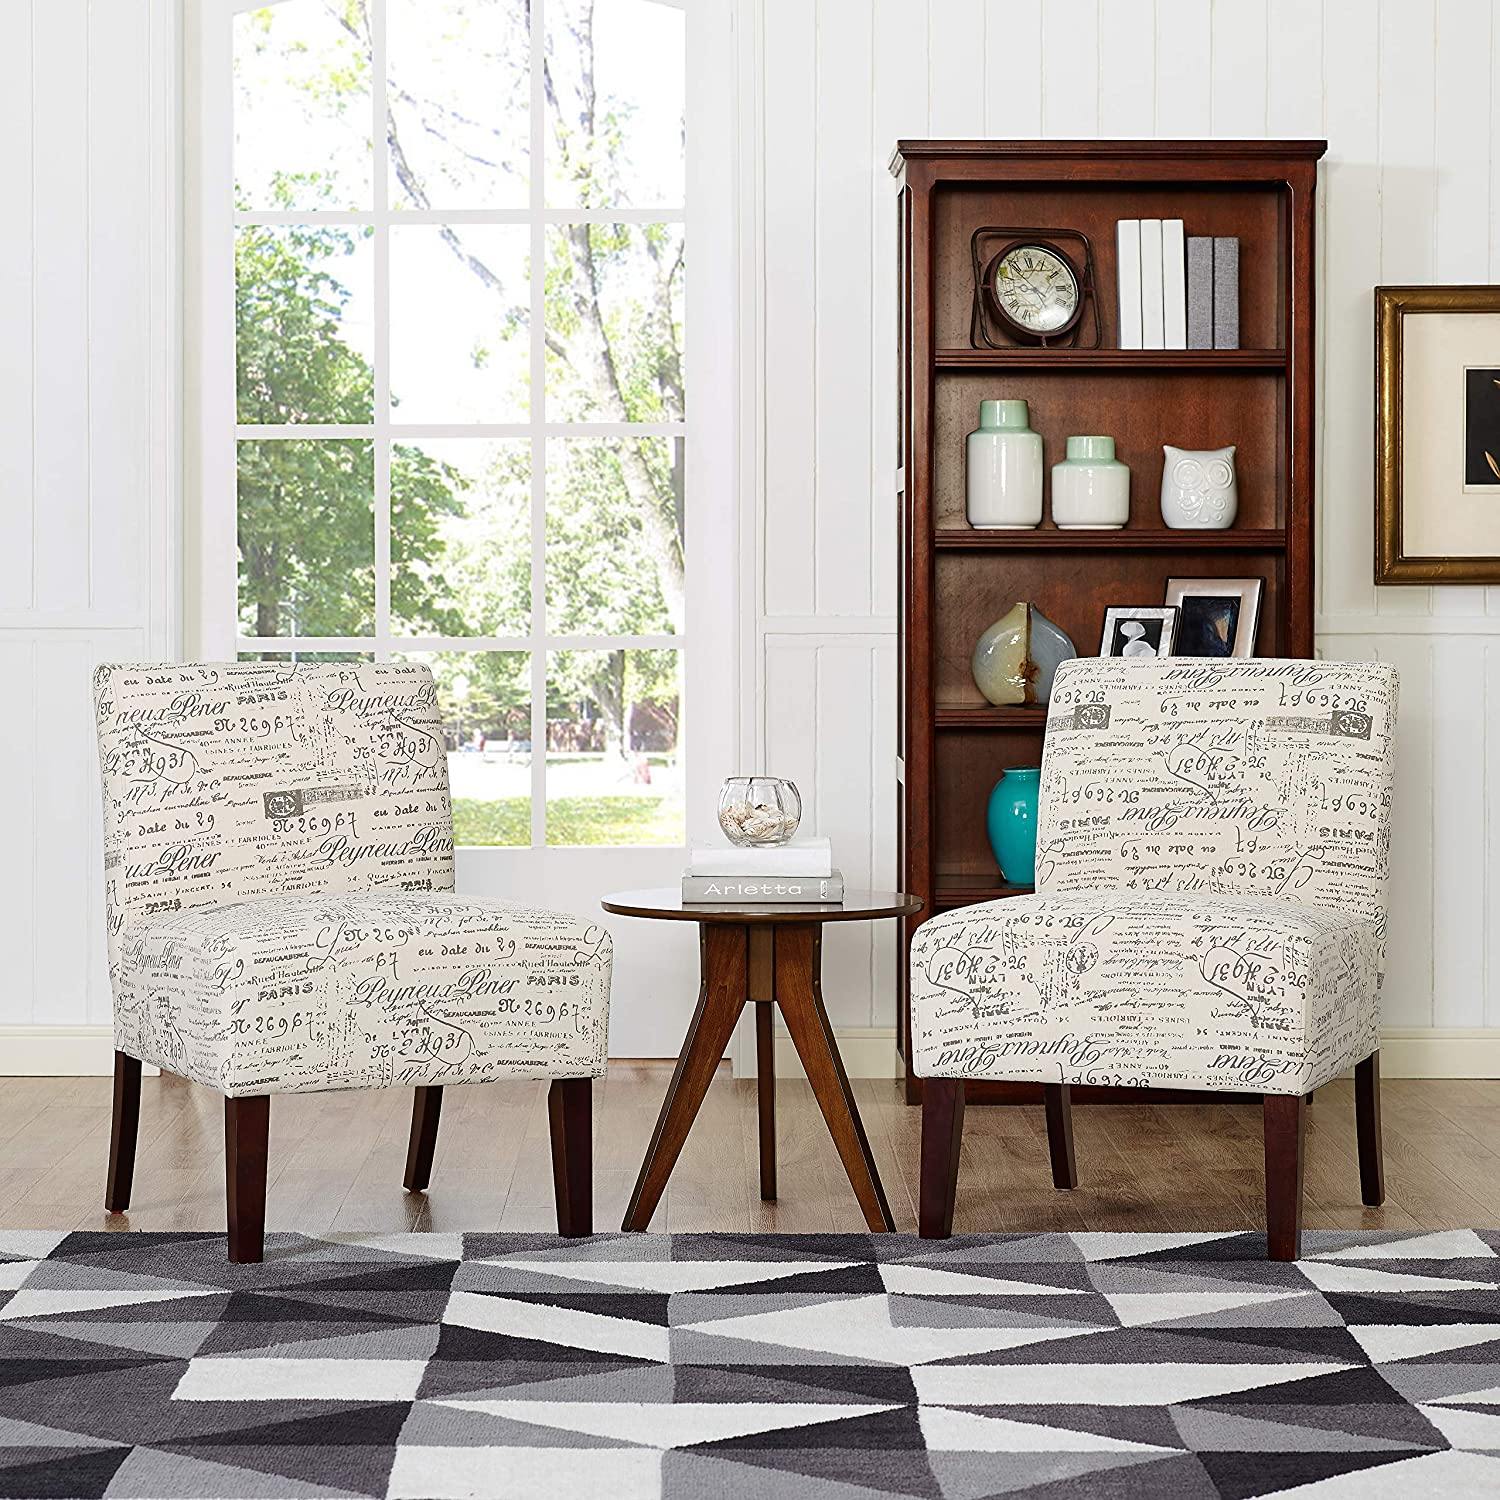 Oadeer Home Accent Chair Off-White